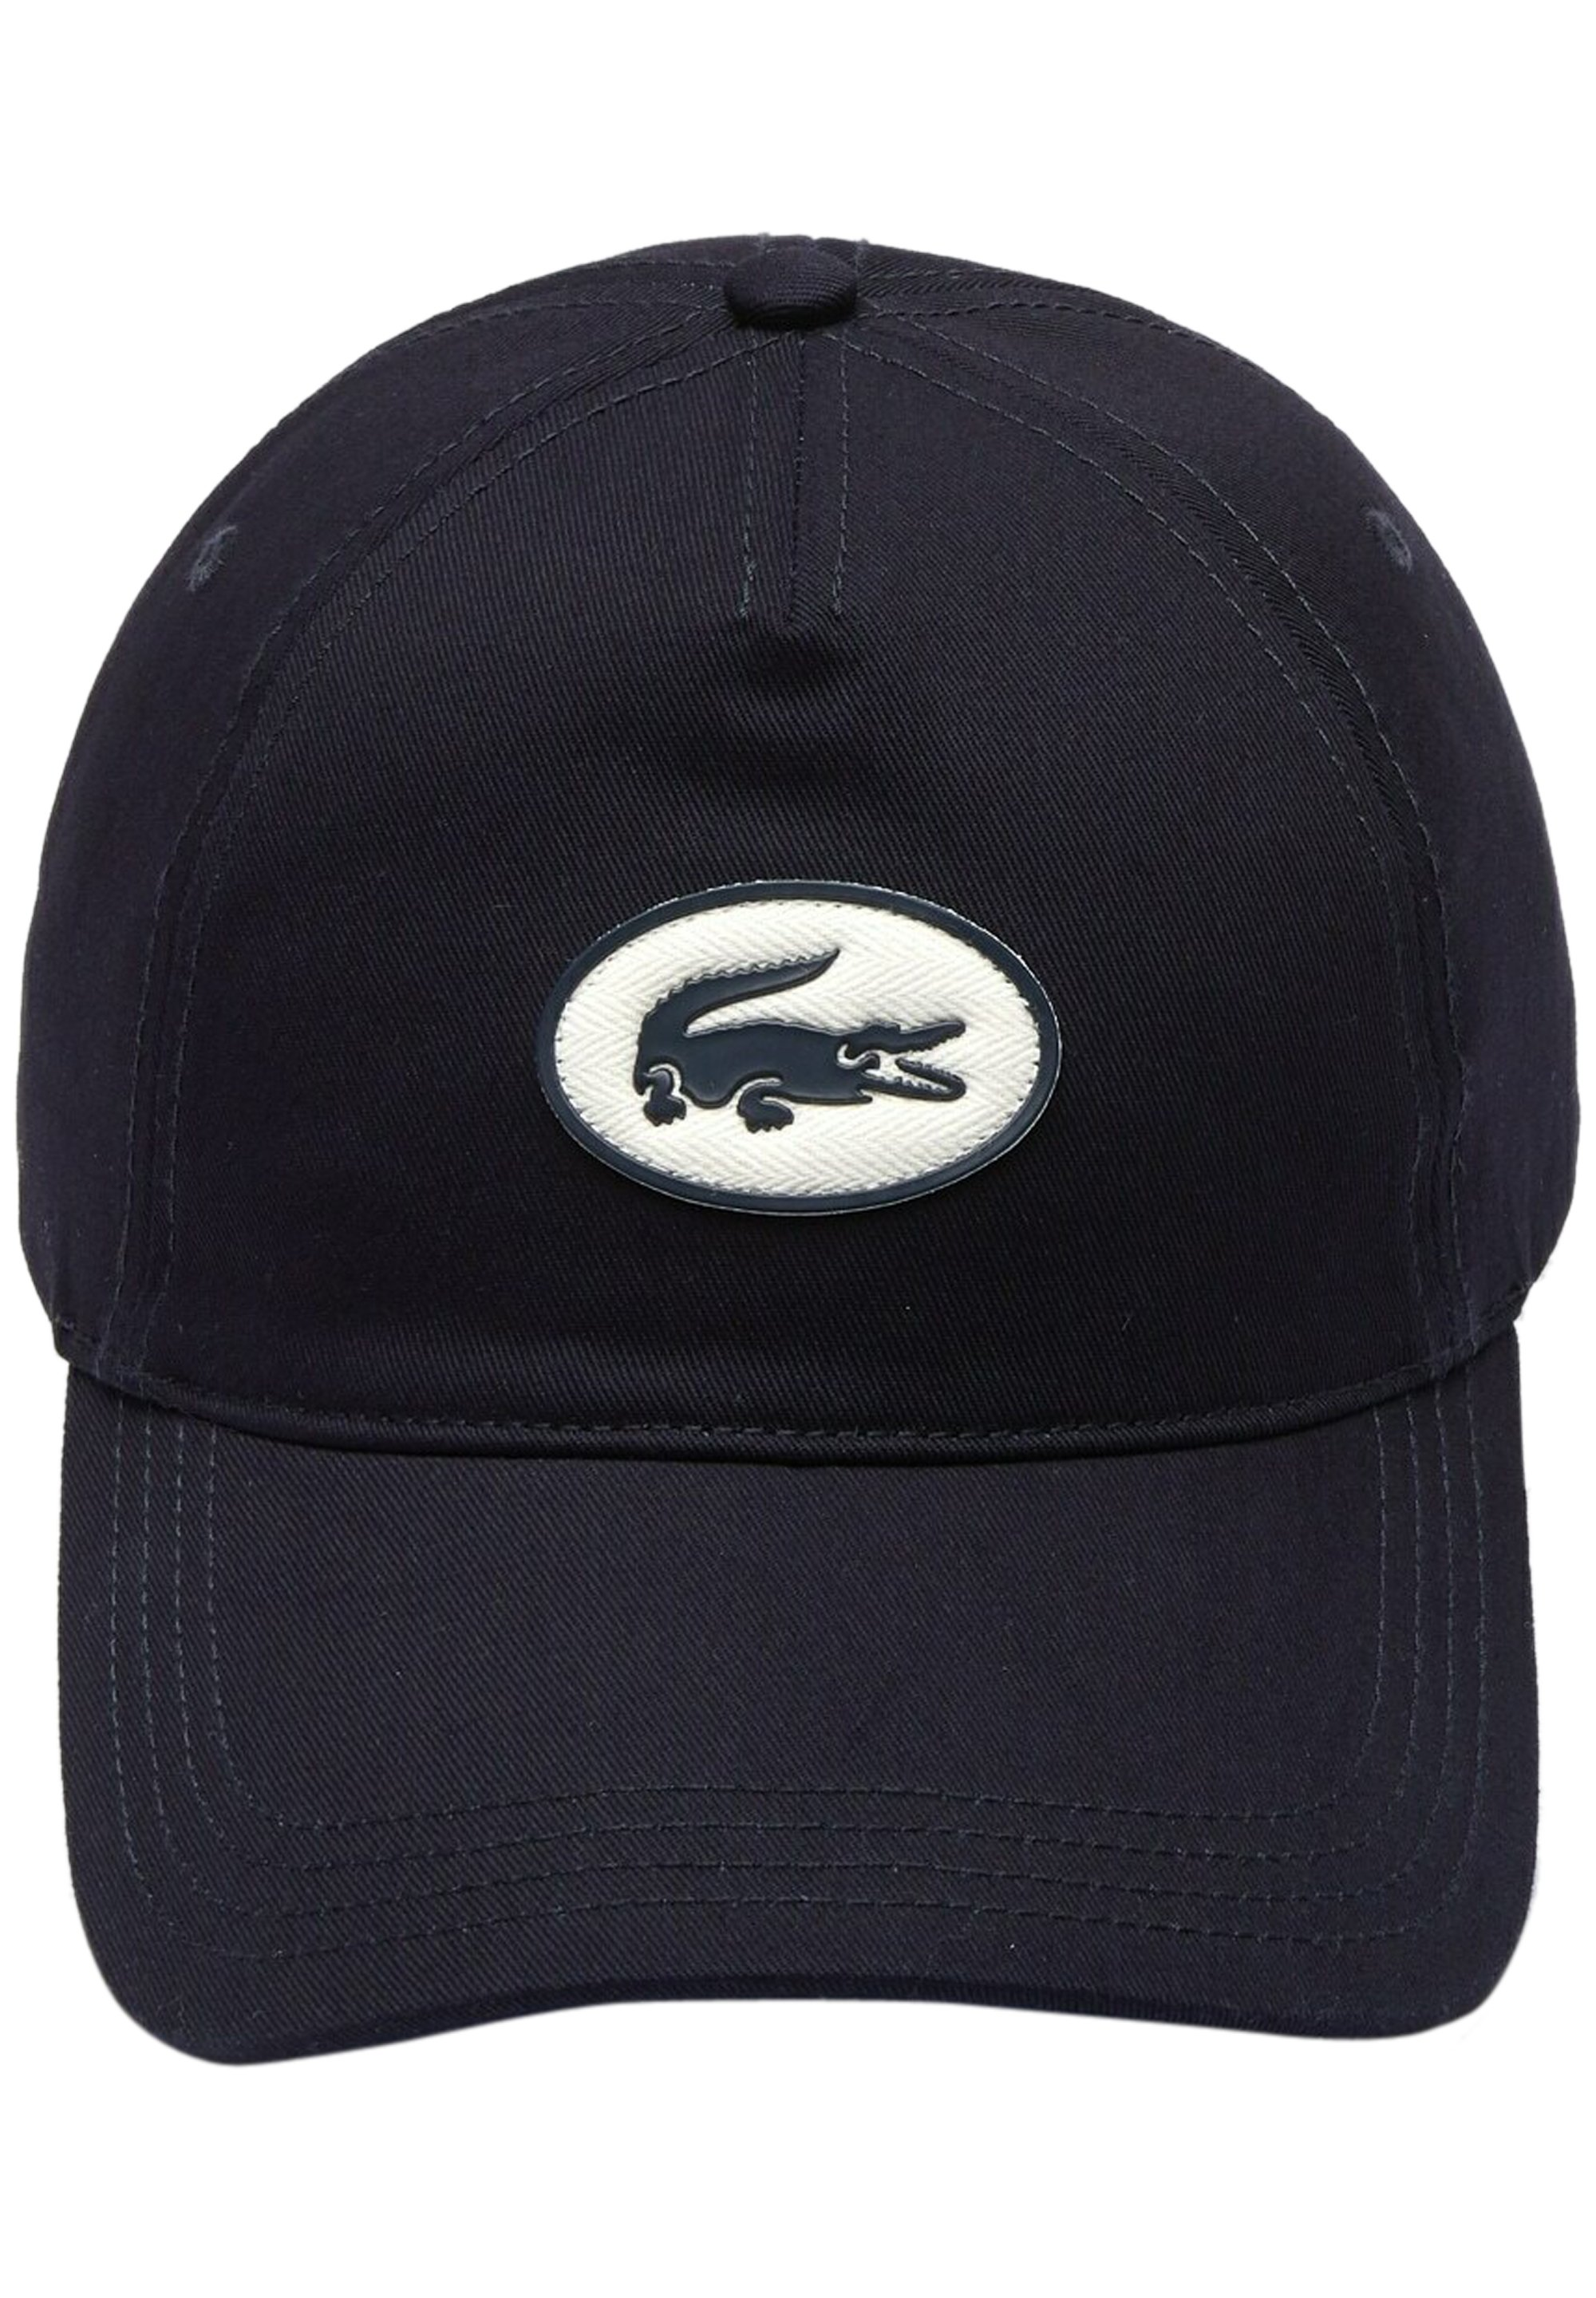 Homme RK9378 - Casquette